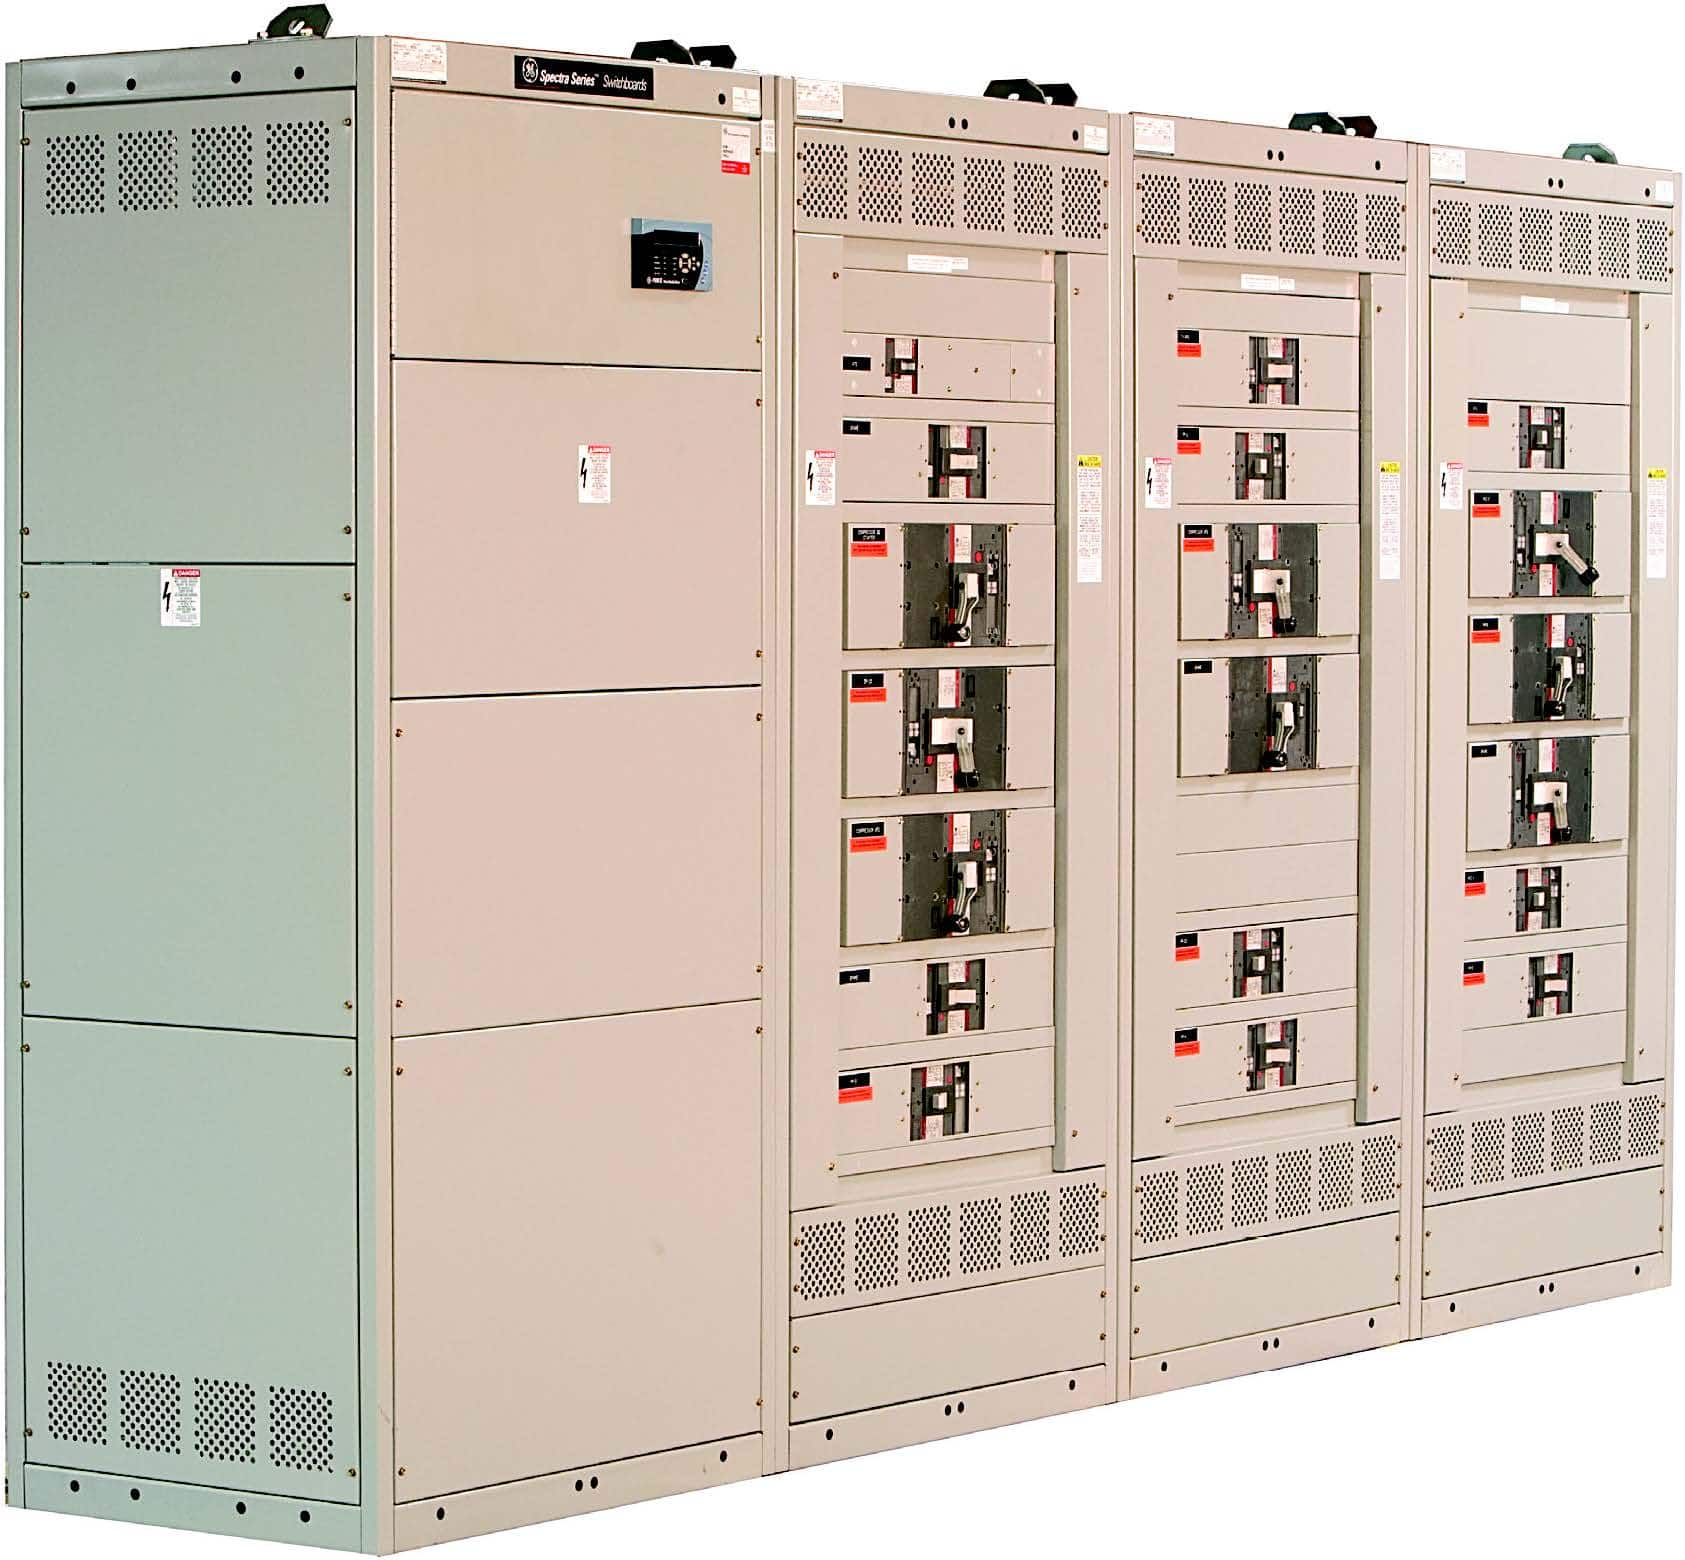 GE Spectra Series Switchboard